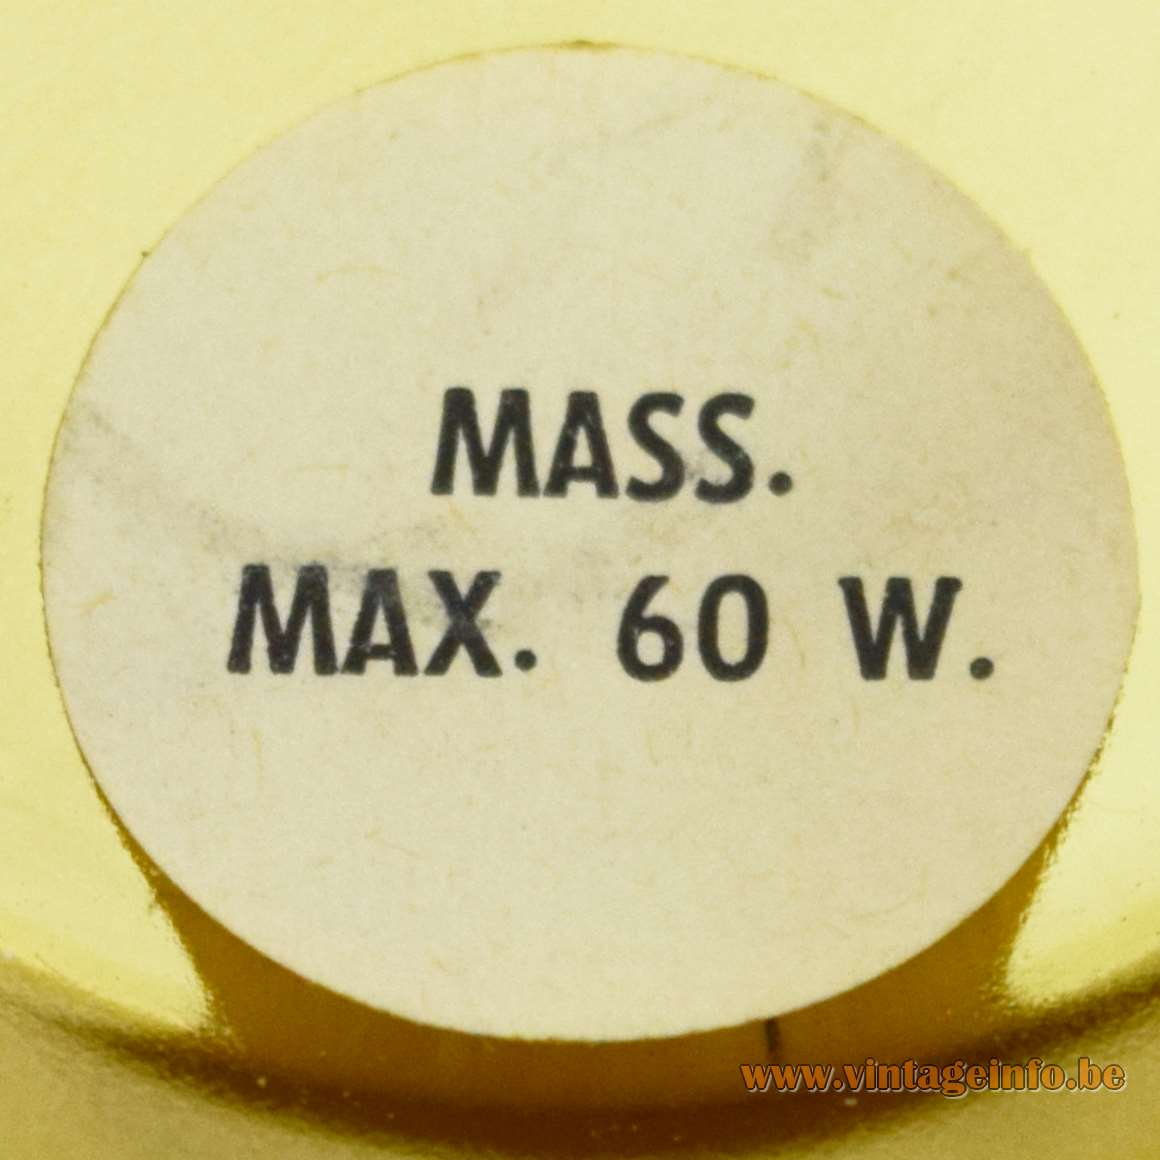 Massive Label Mass. Max. 60 W.